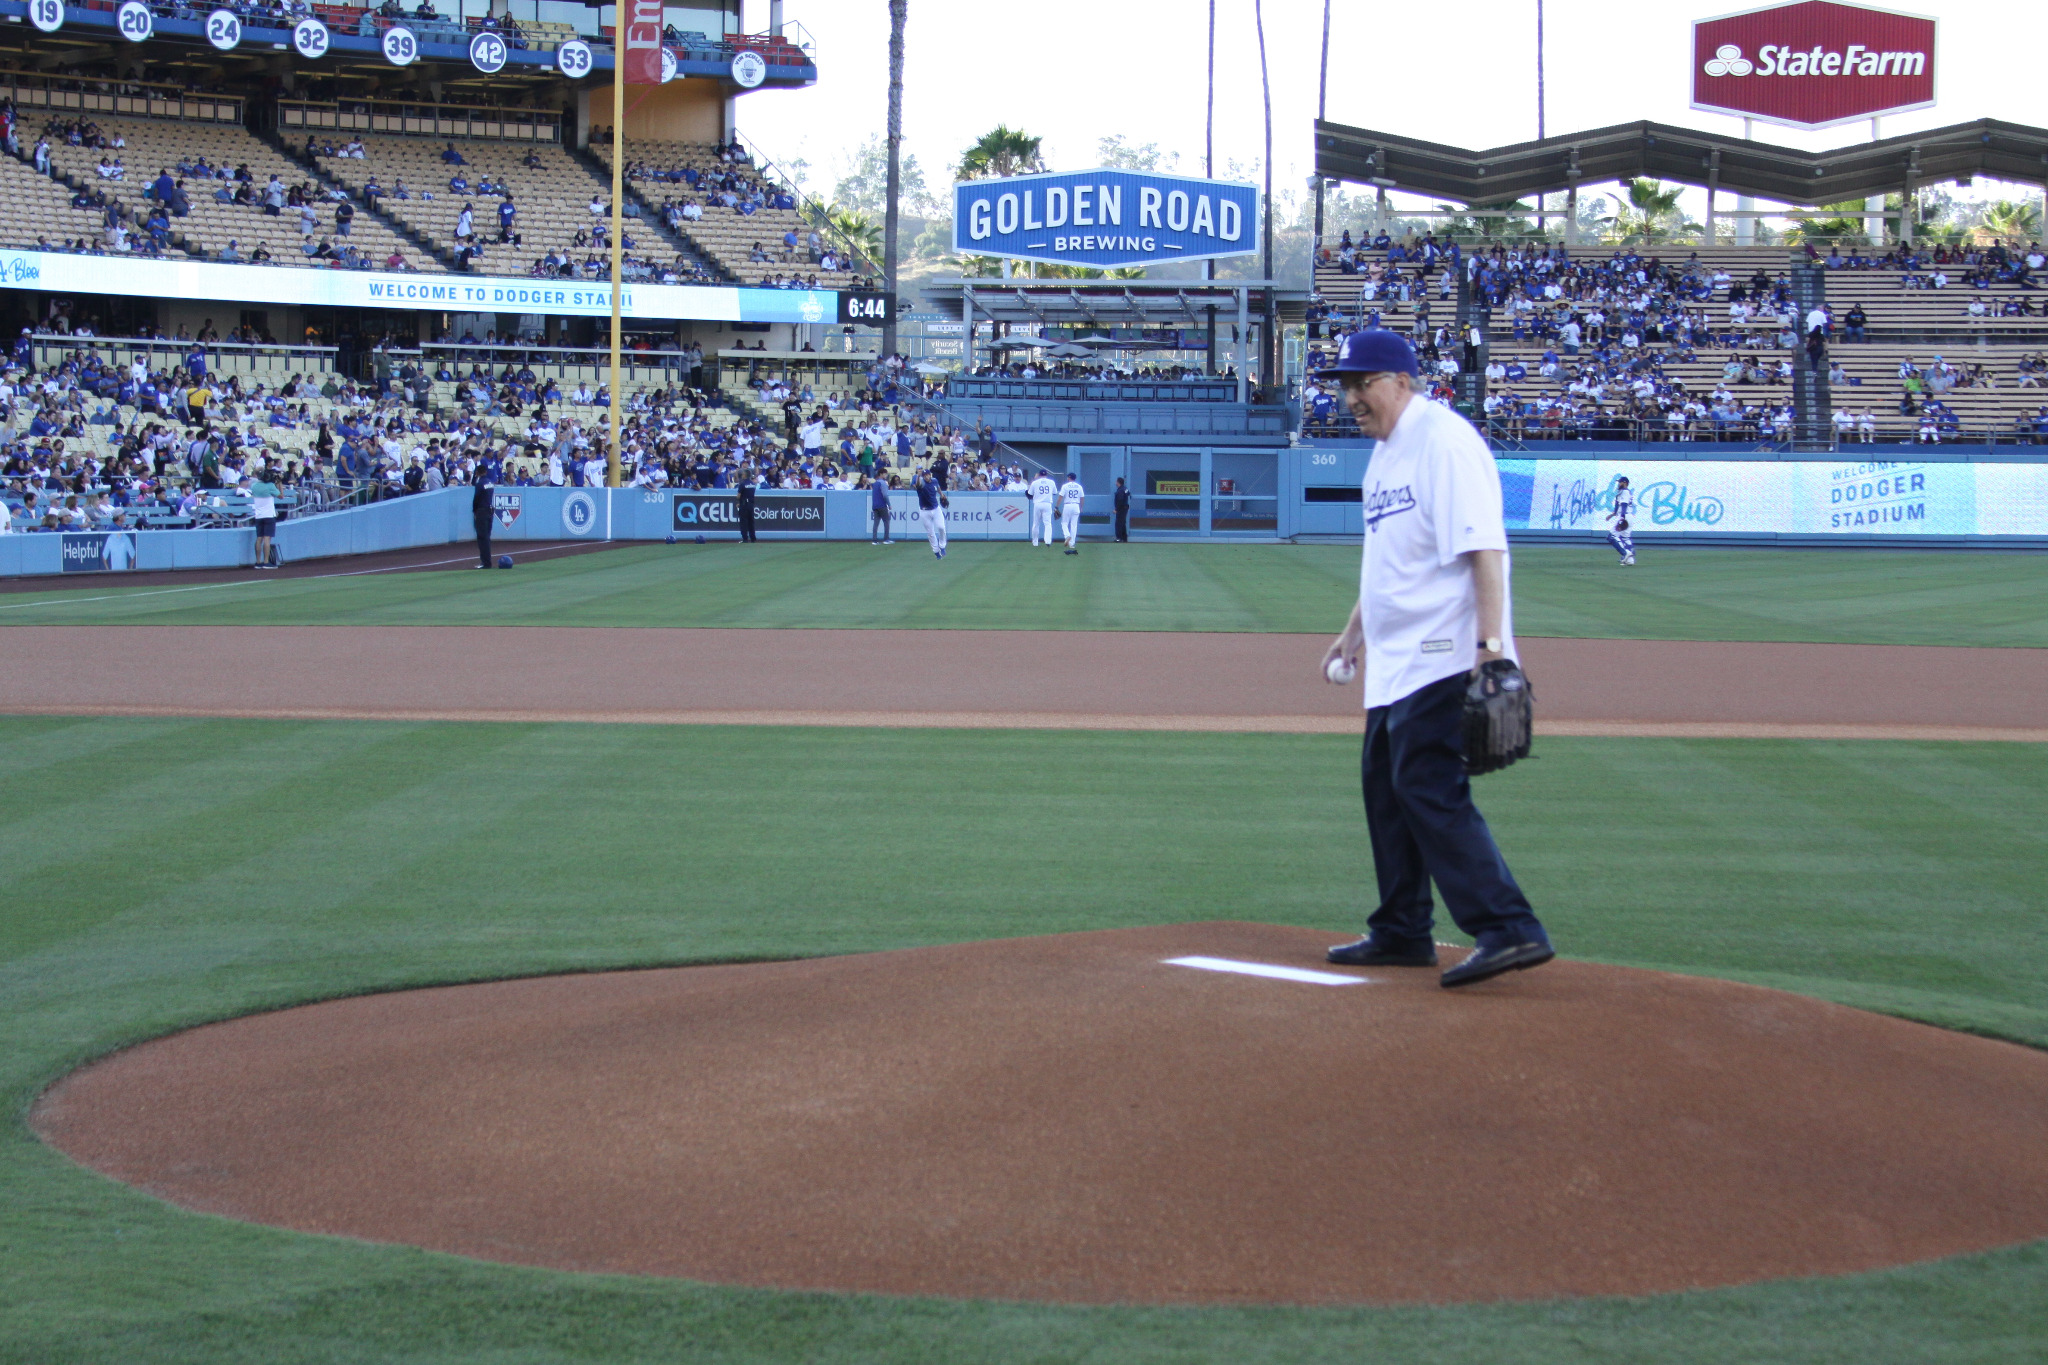 Elder Neil L. Andersen throws the first pitch as the Los Angeles Dodgers take on the Miami Marlins at Dodger Stadium on July 19, 2019.